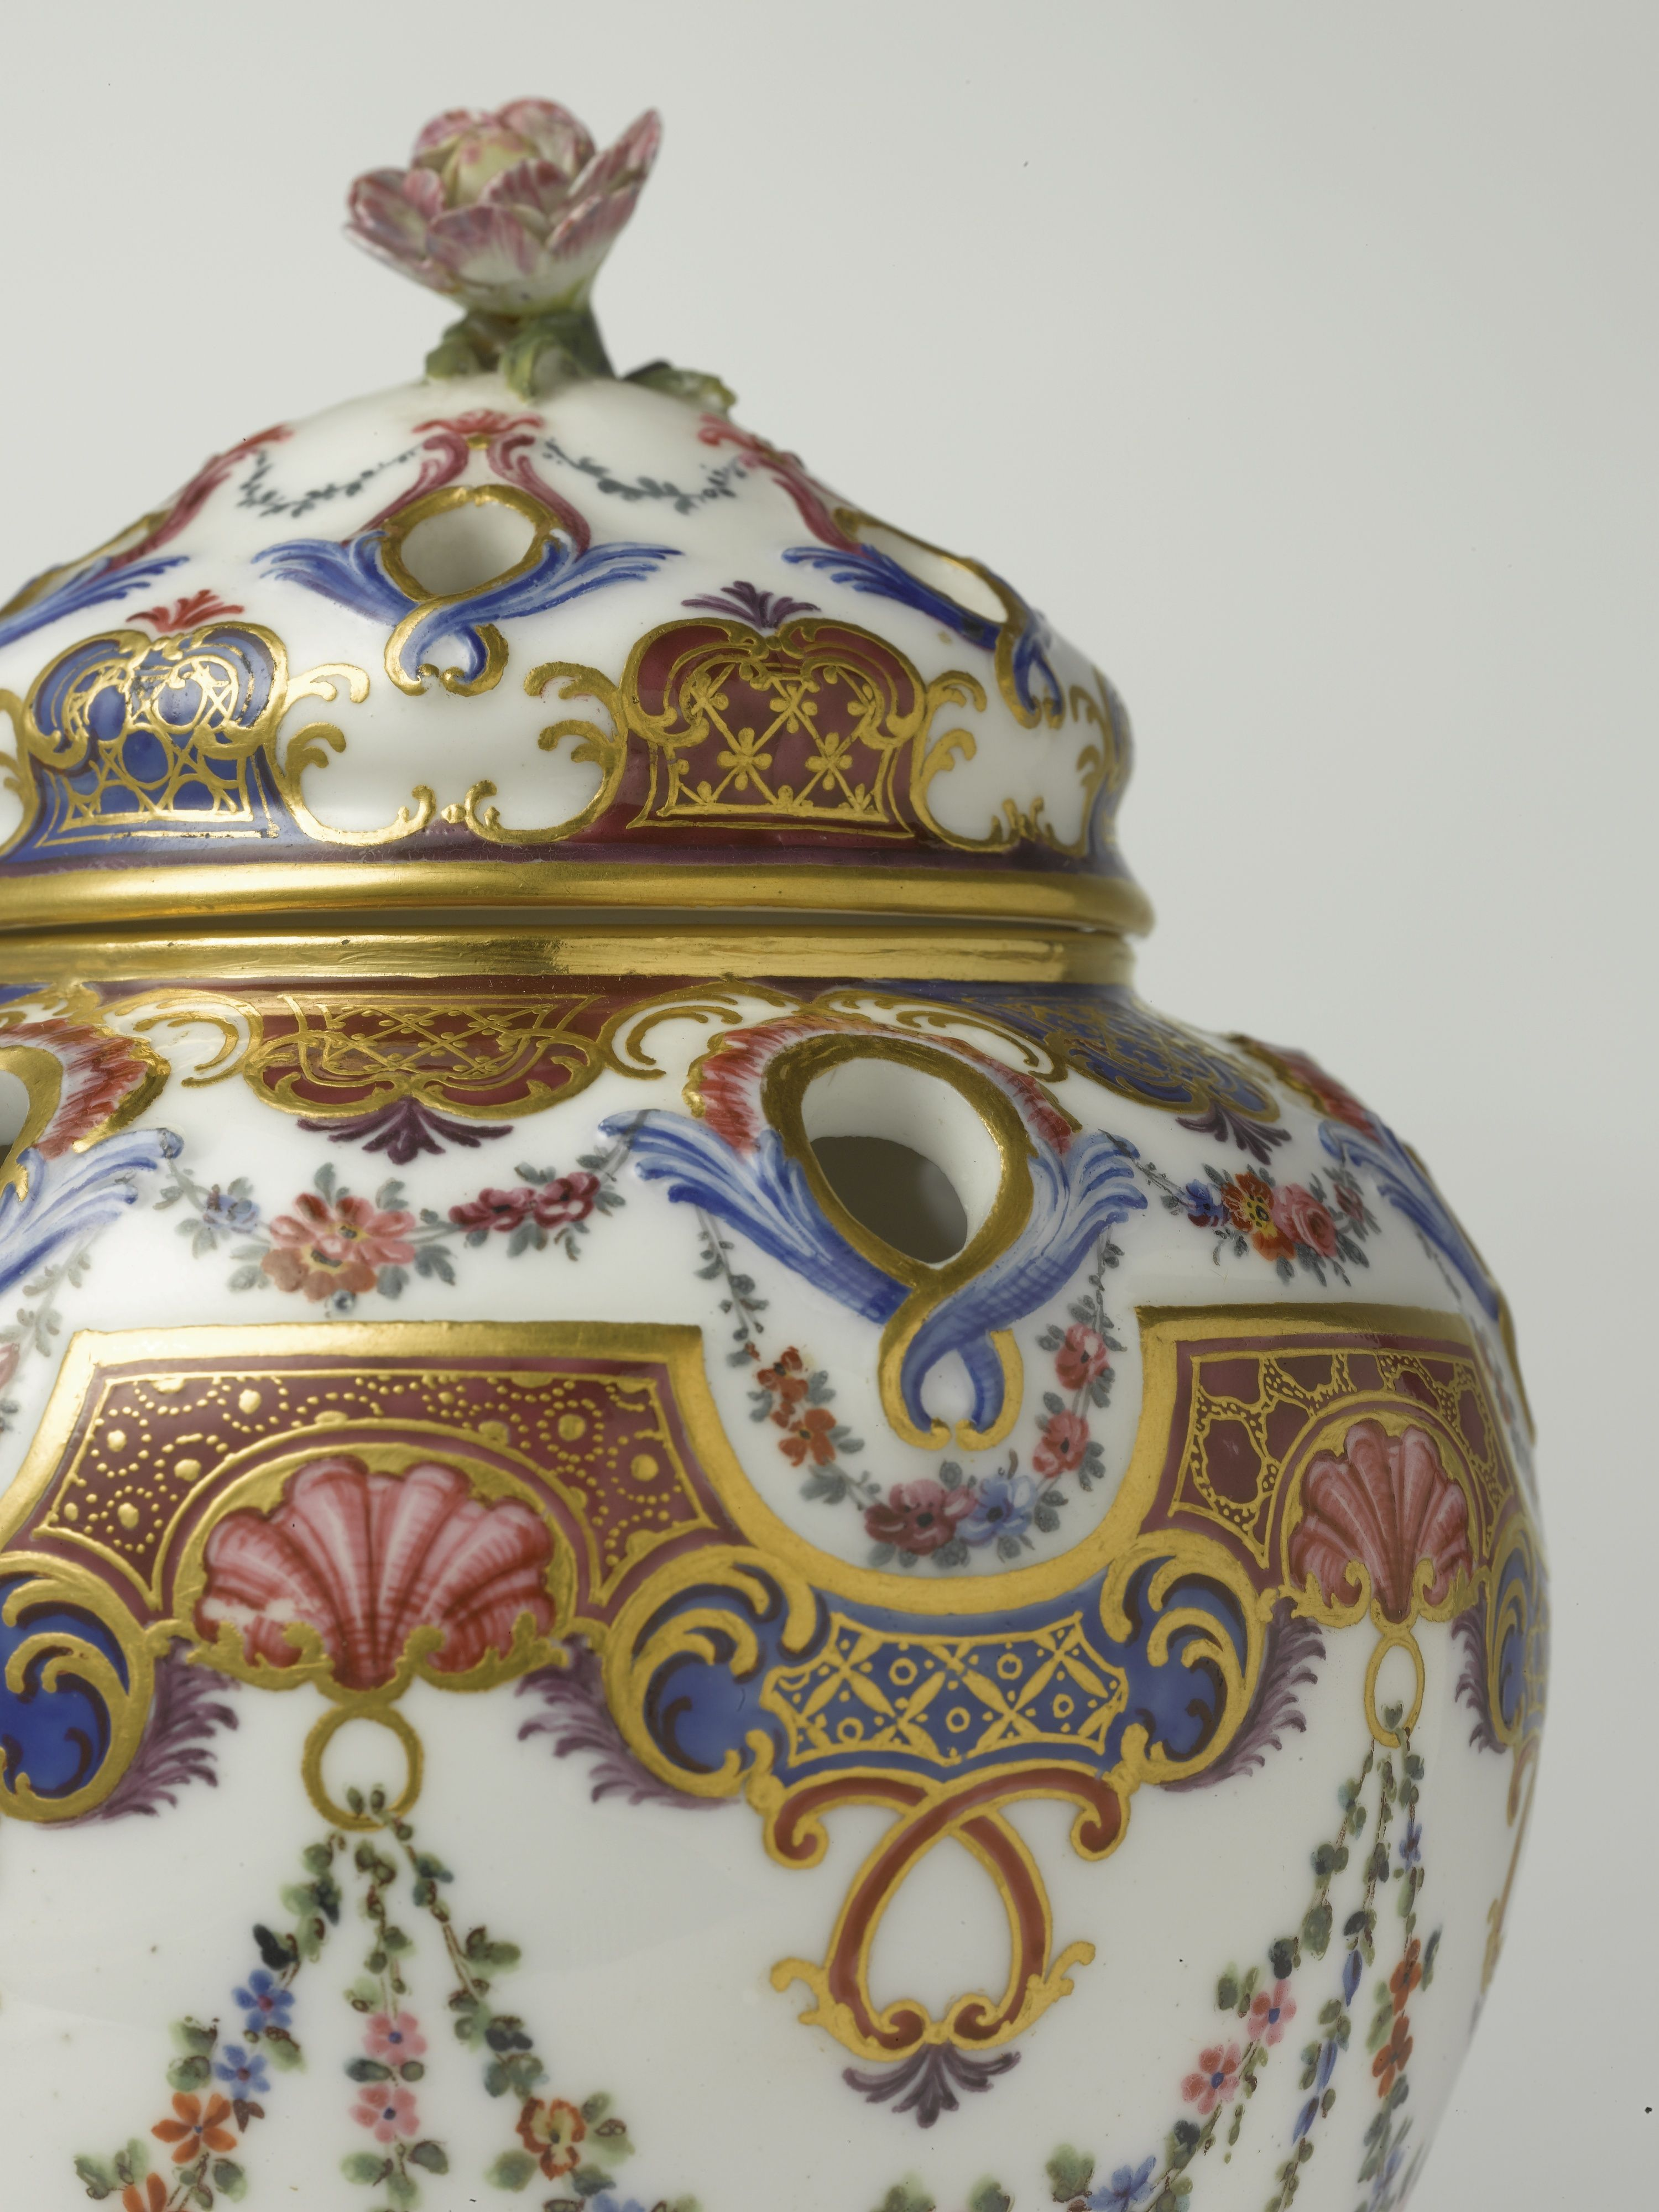 c1762 A PAIR OF SEVRES GILT-METAL MOUNTED POT POURRI VASES AND COVERS THE PORCELAIN CIRCA 1762